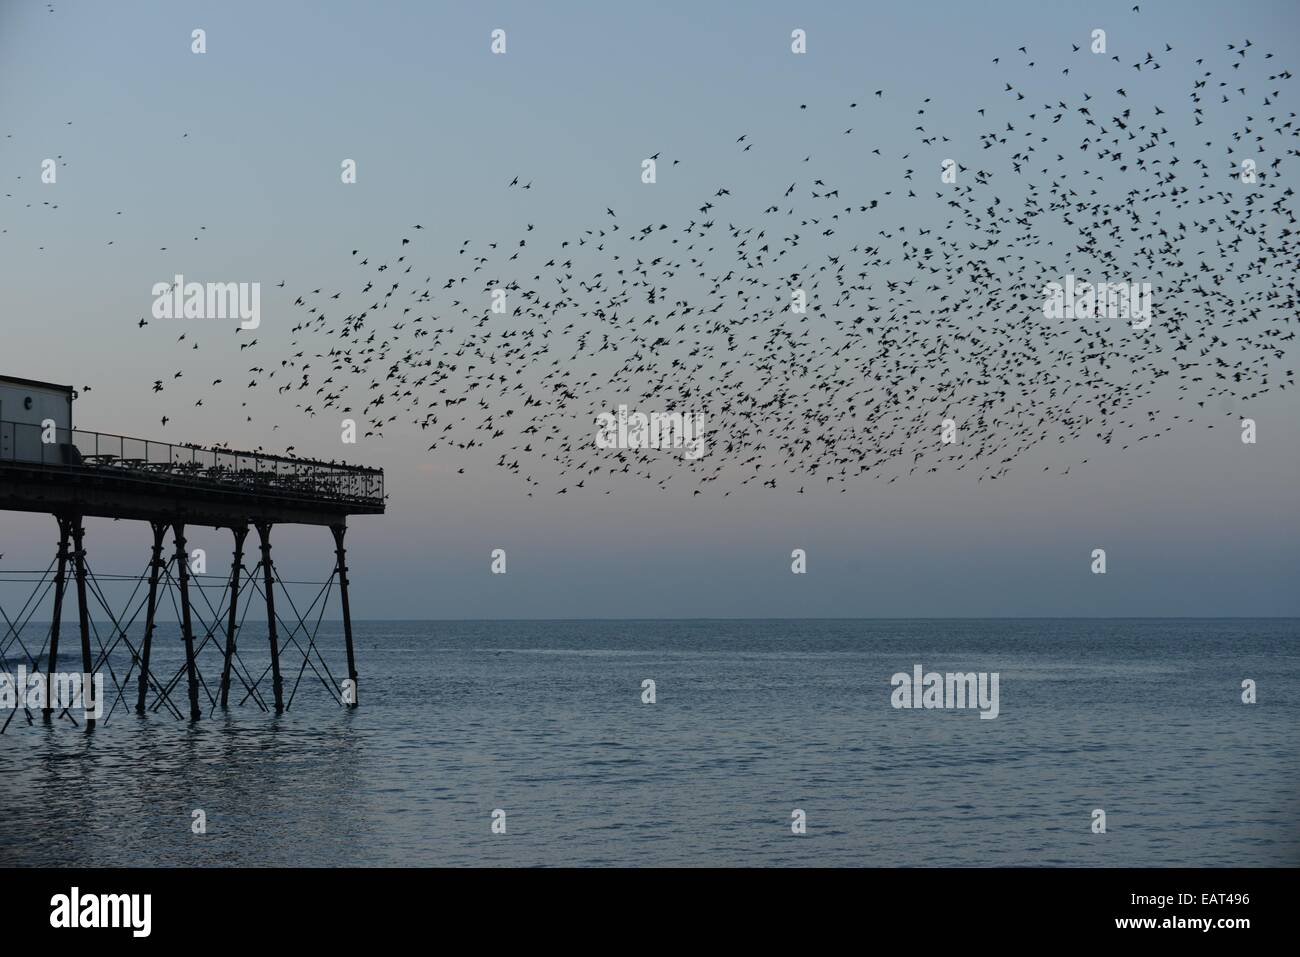 Aberystwyth, Wales, UK. 20th November, 2014. Starlings roosting on Aberystwyth  pier at sundown. The dramatic murmuration - Stock Image